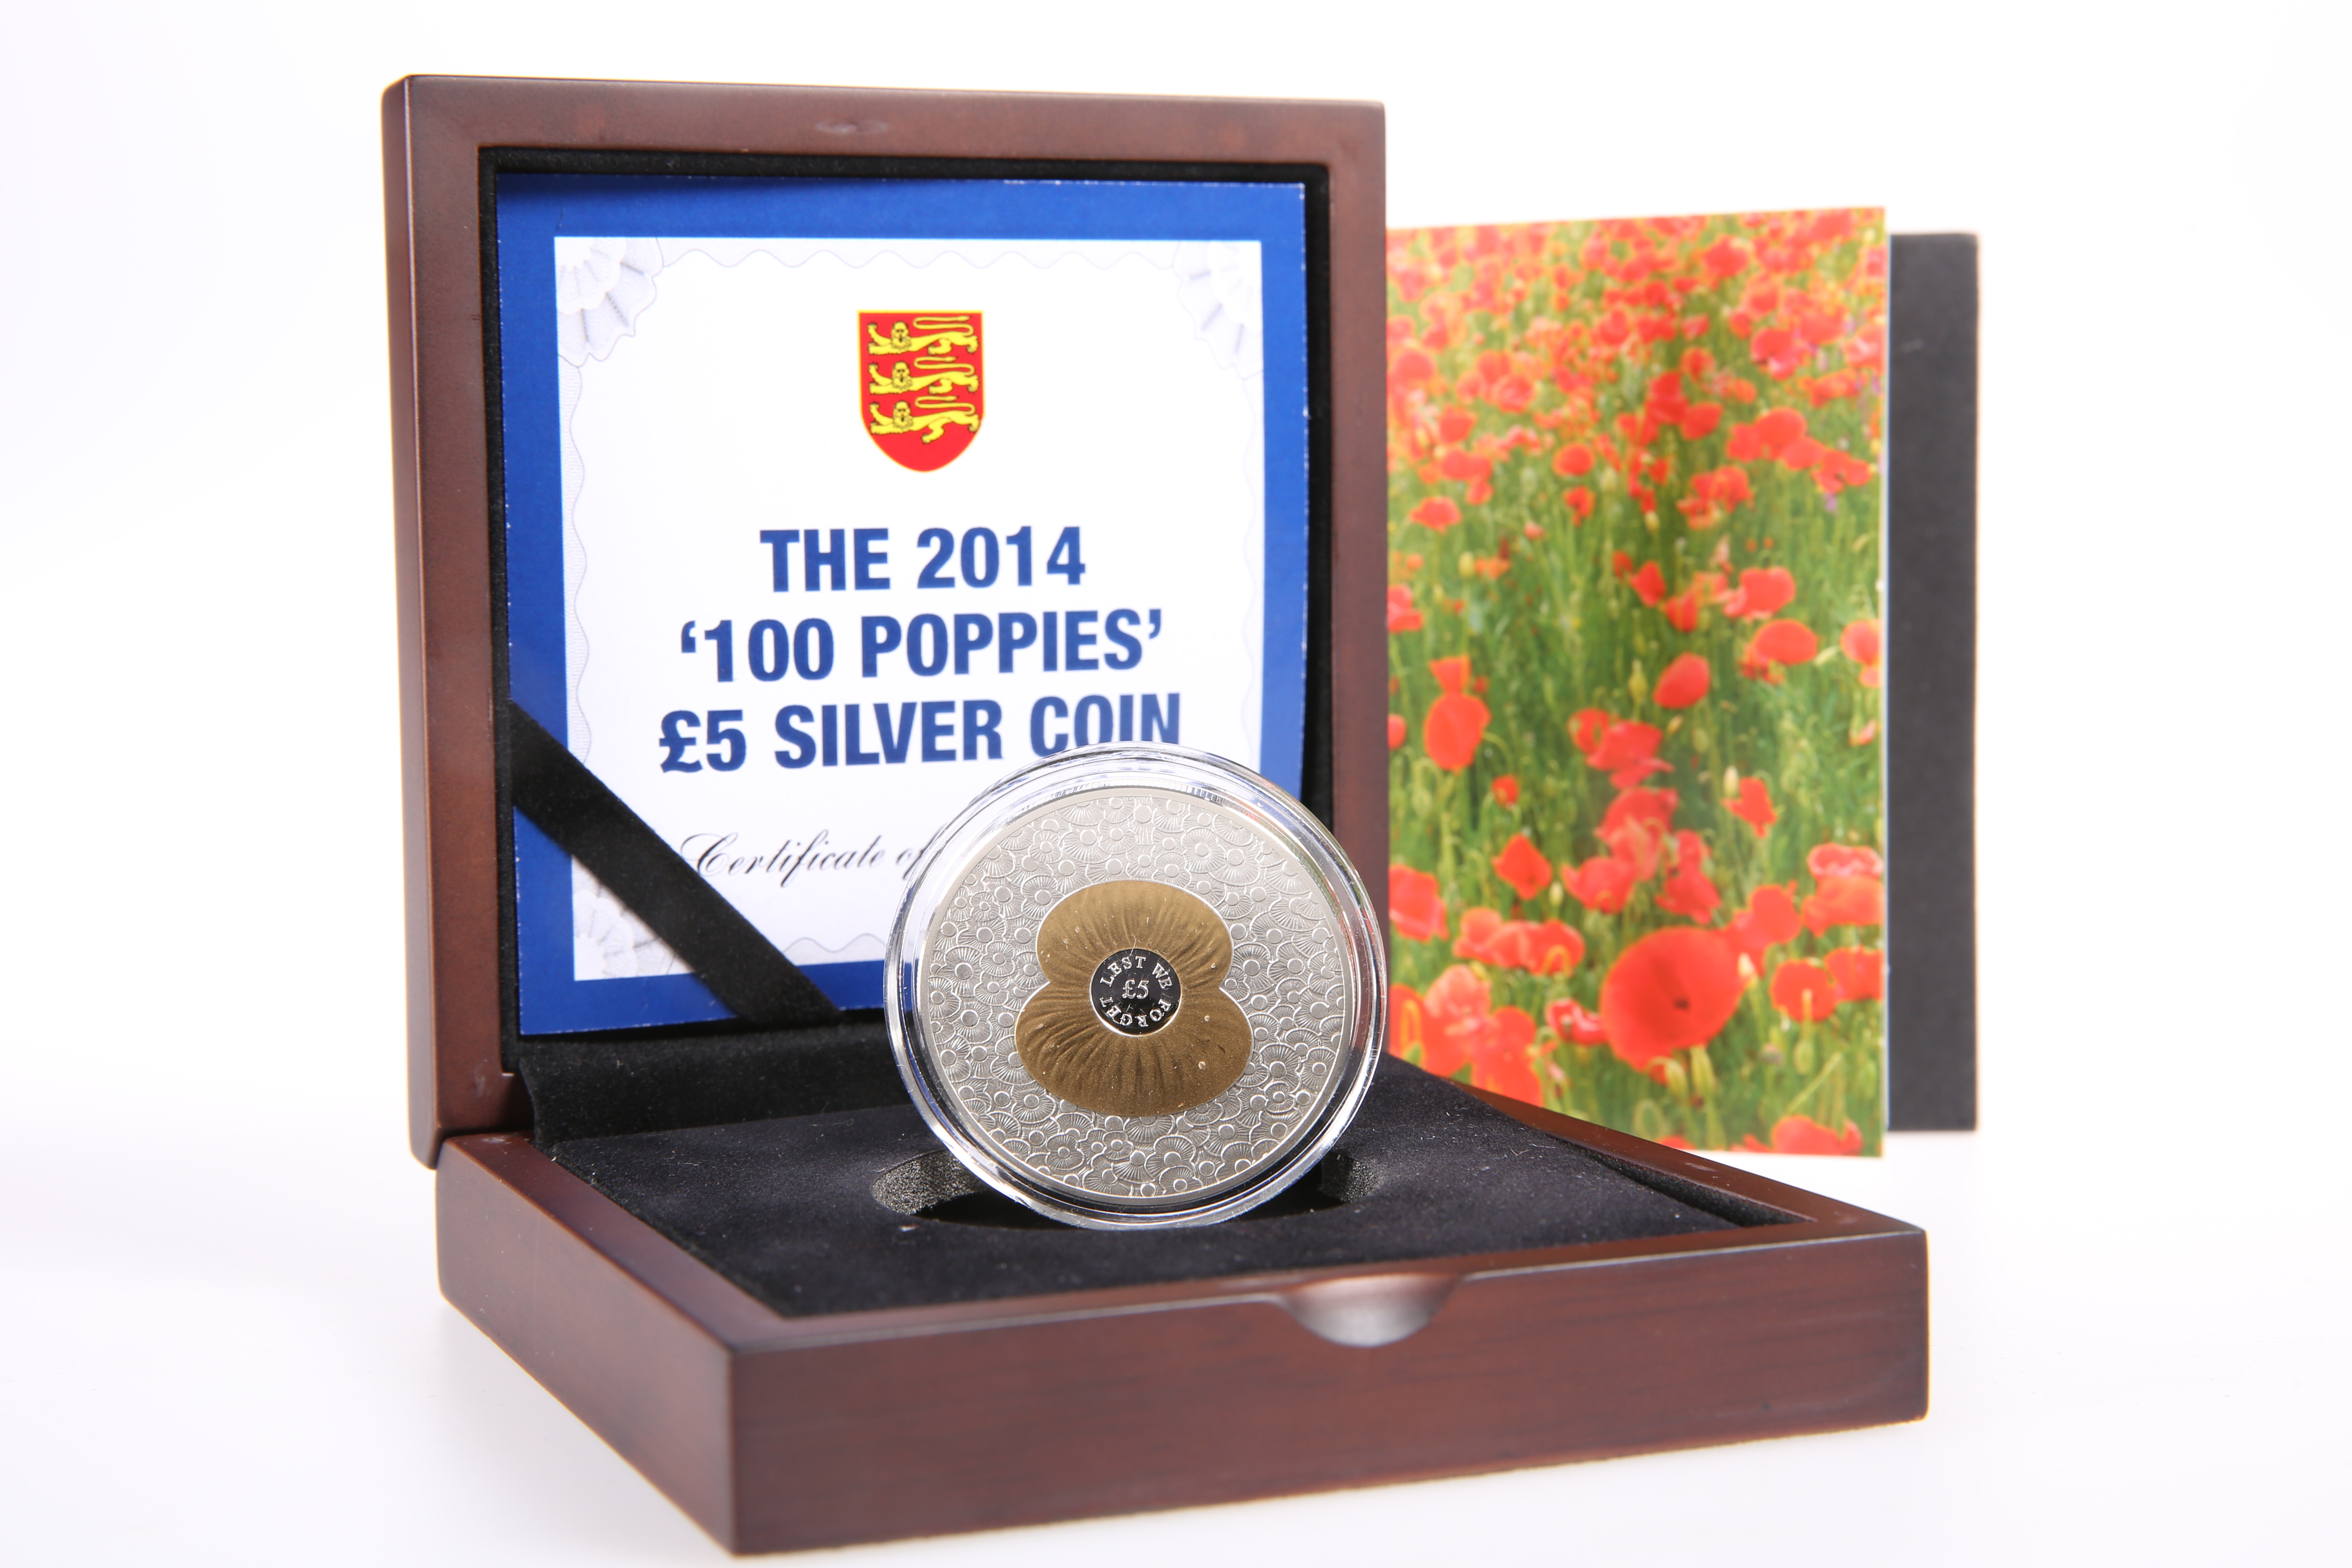 A 2014 '100 POPPIES' £5 SILVER COIN, boxed with COA